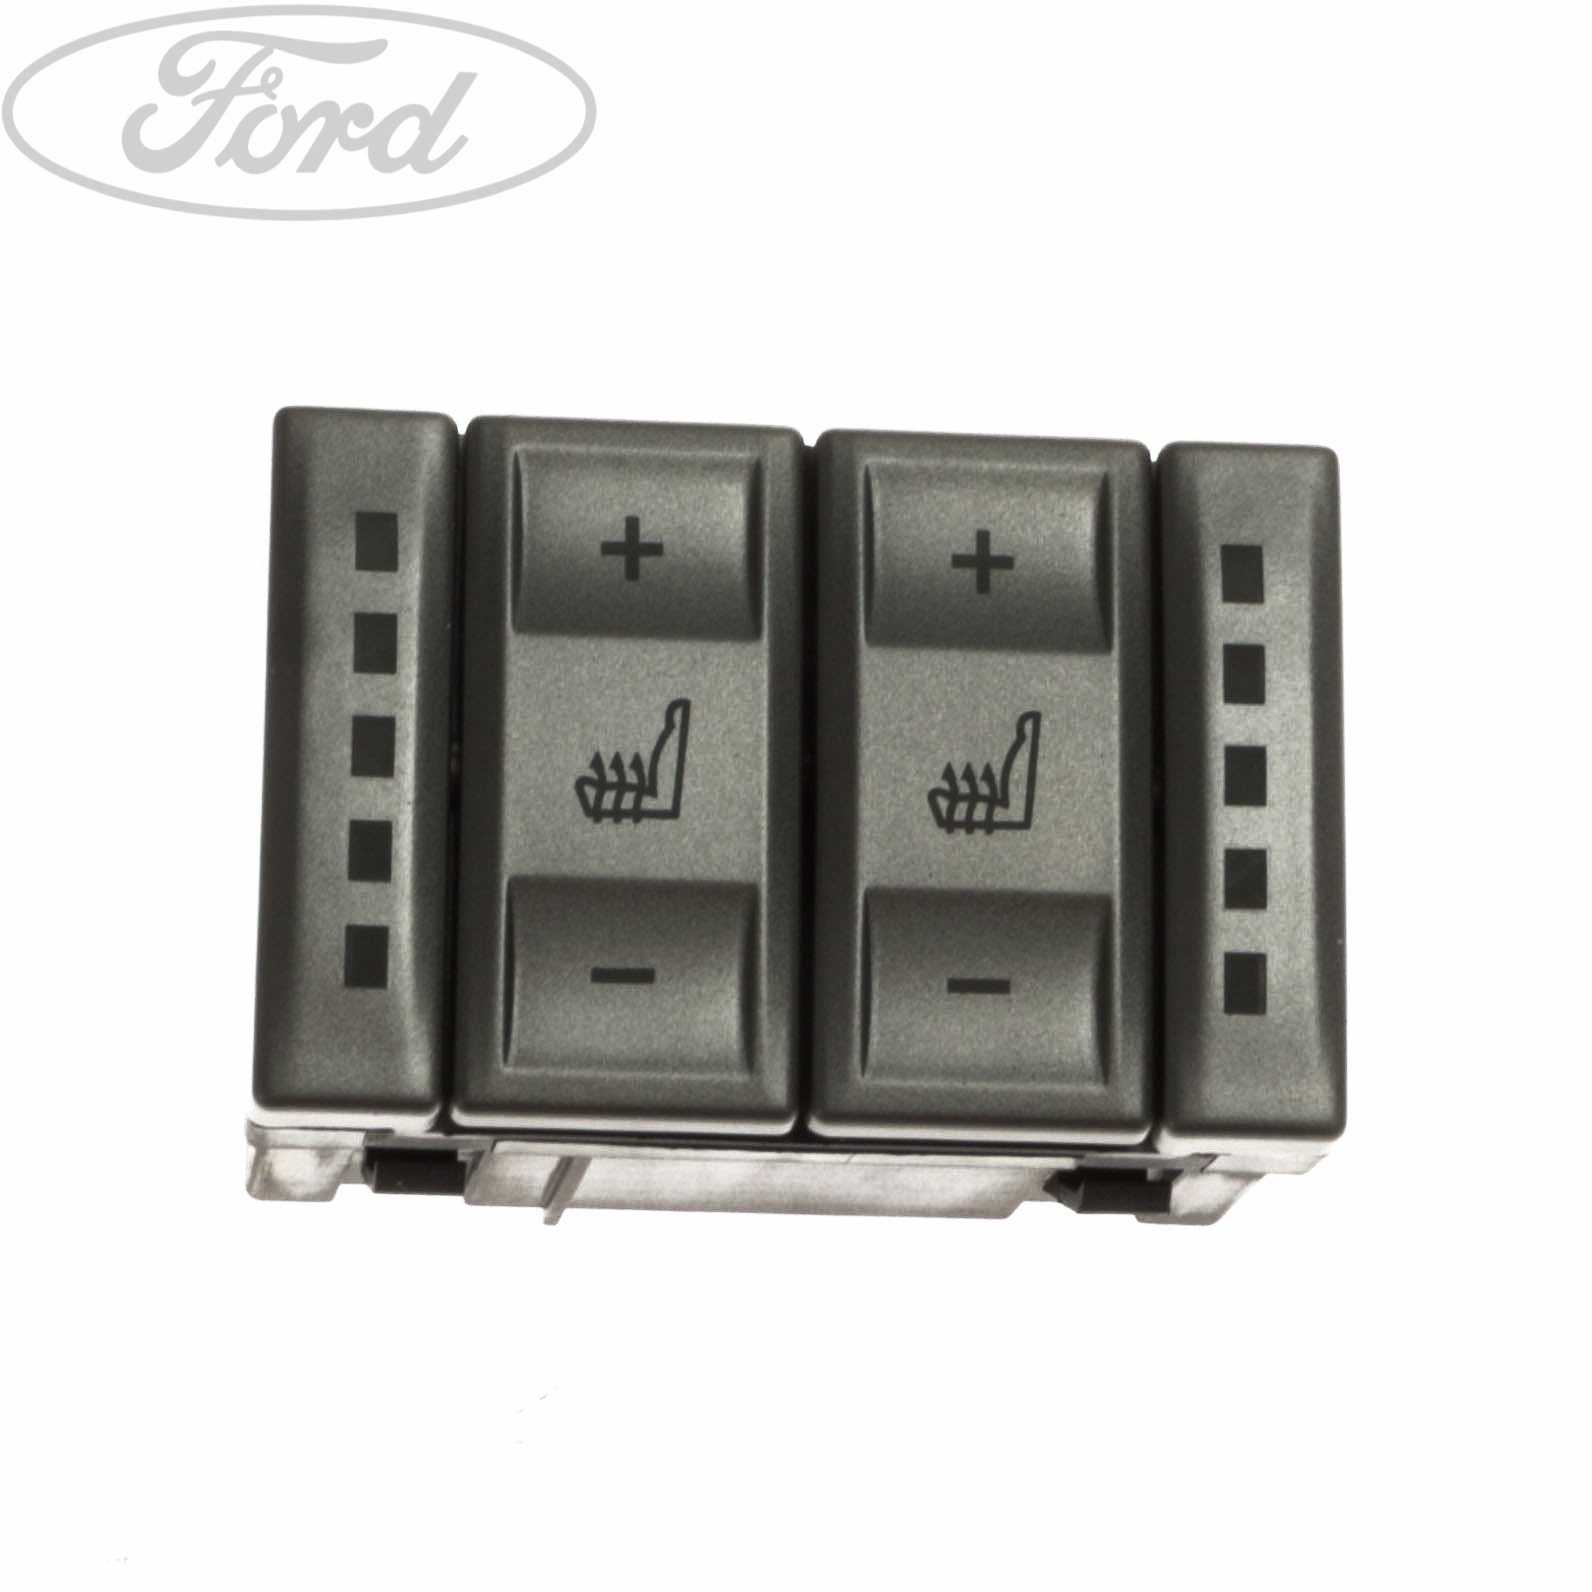 central fuse box ford mondeo mk4 32 wiring diagram 2004 touareg fuse box diagram 2004 touareg fuse box diagram